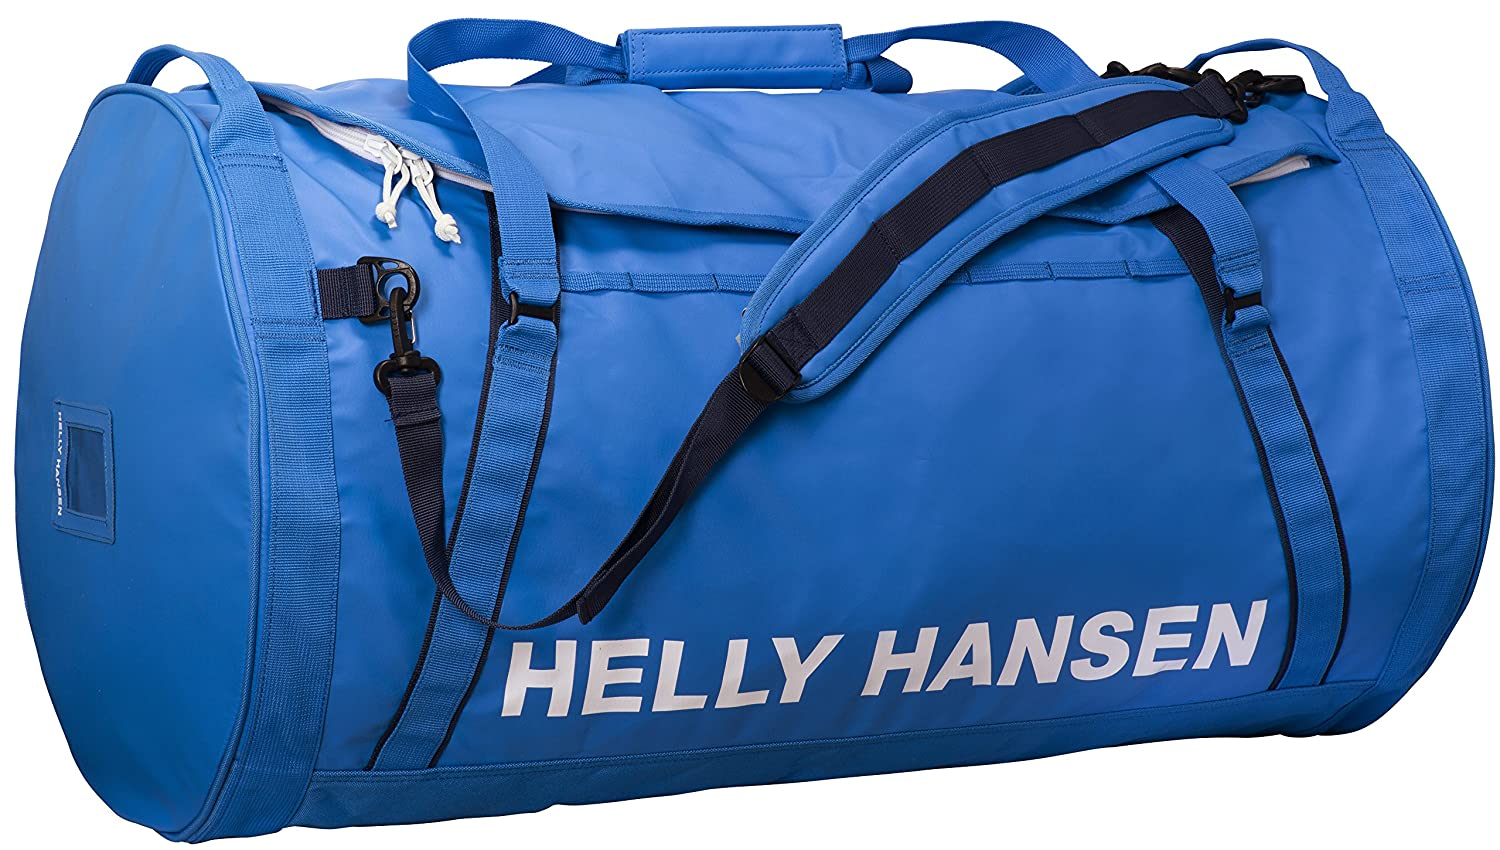 c73ee6522f1 Helly Hansen 2 Duffel Bag - Racer Blue, 90 Litre: Amazon.co.uk: Luggage